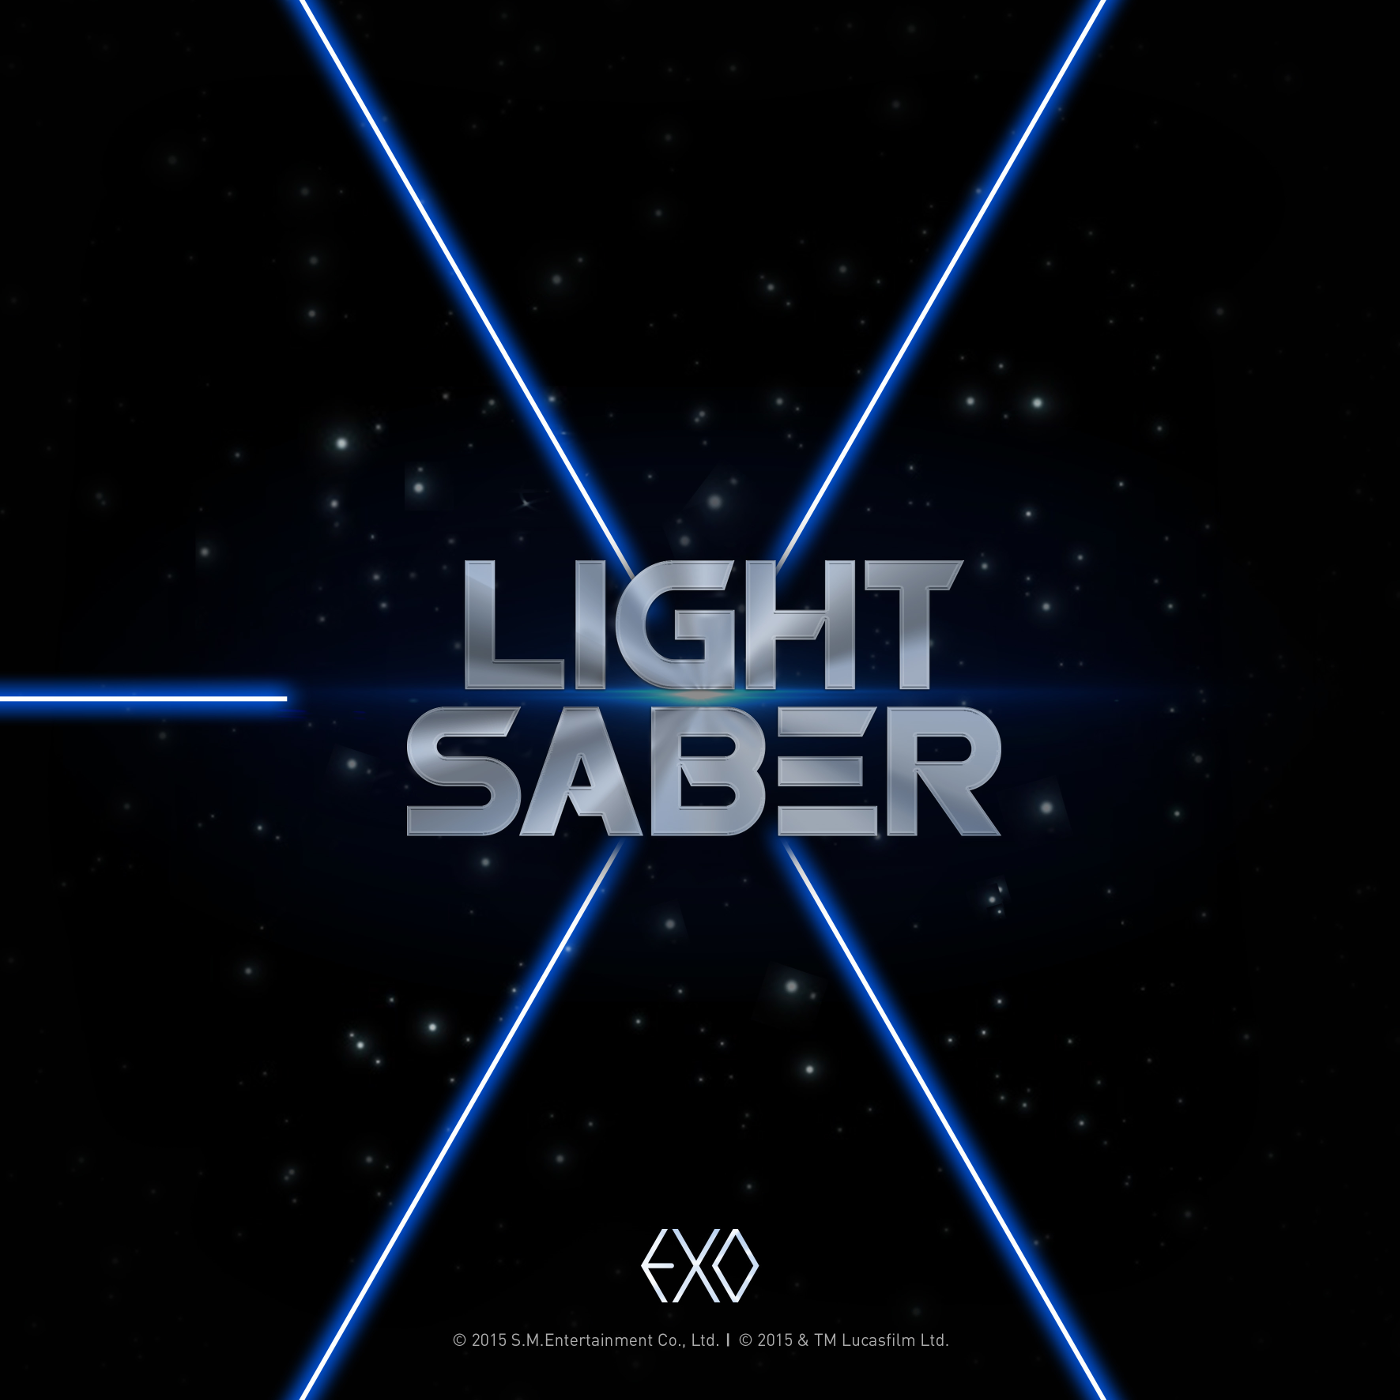 EXO Lightsaber cover.png